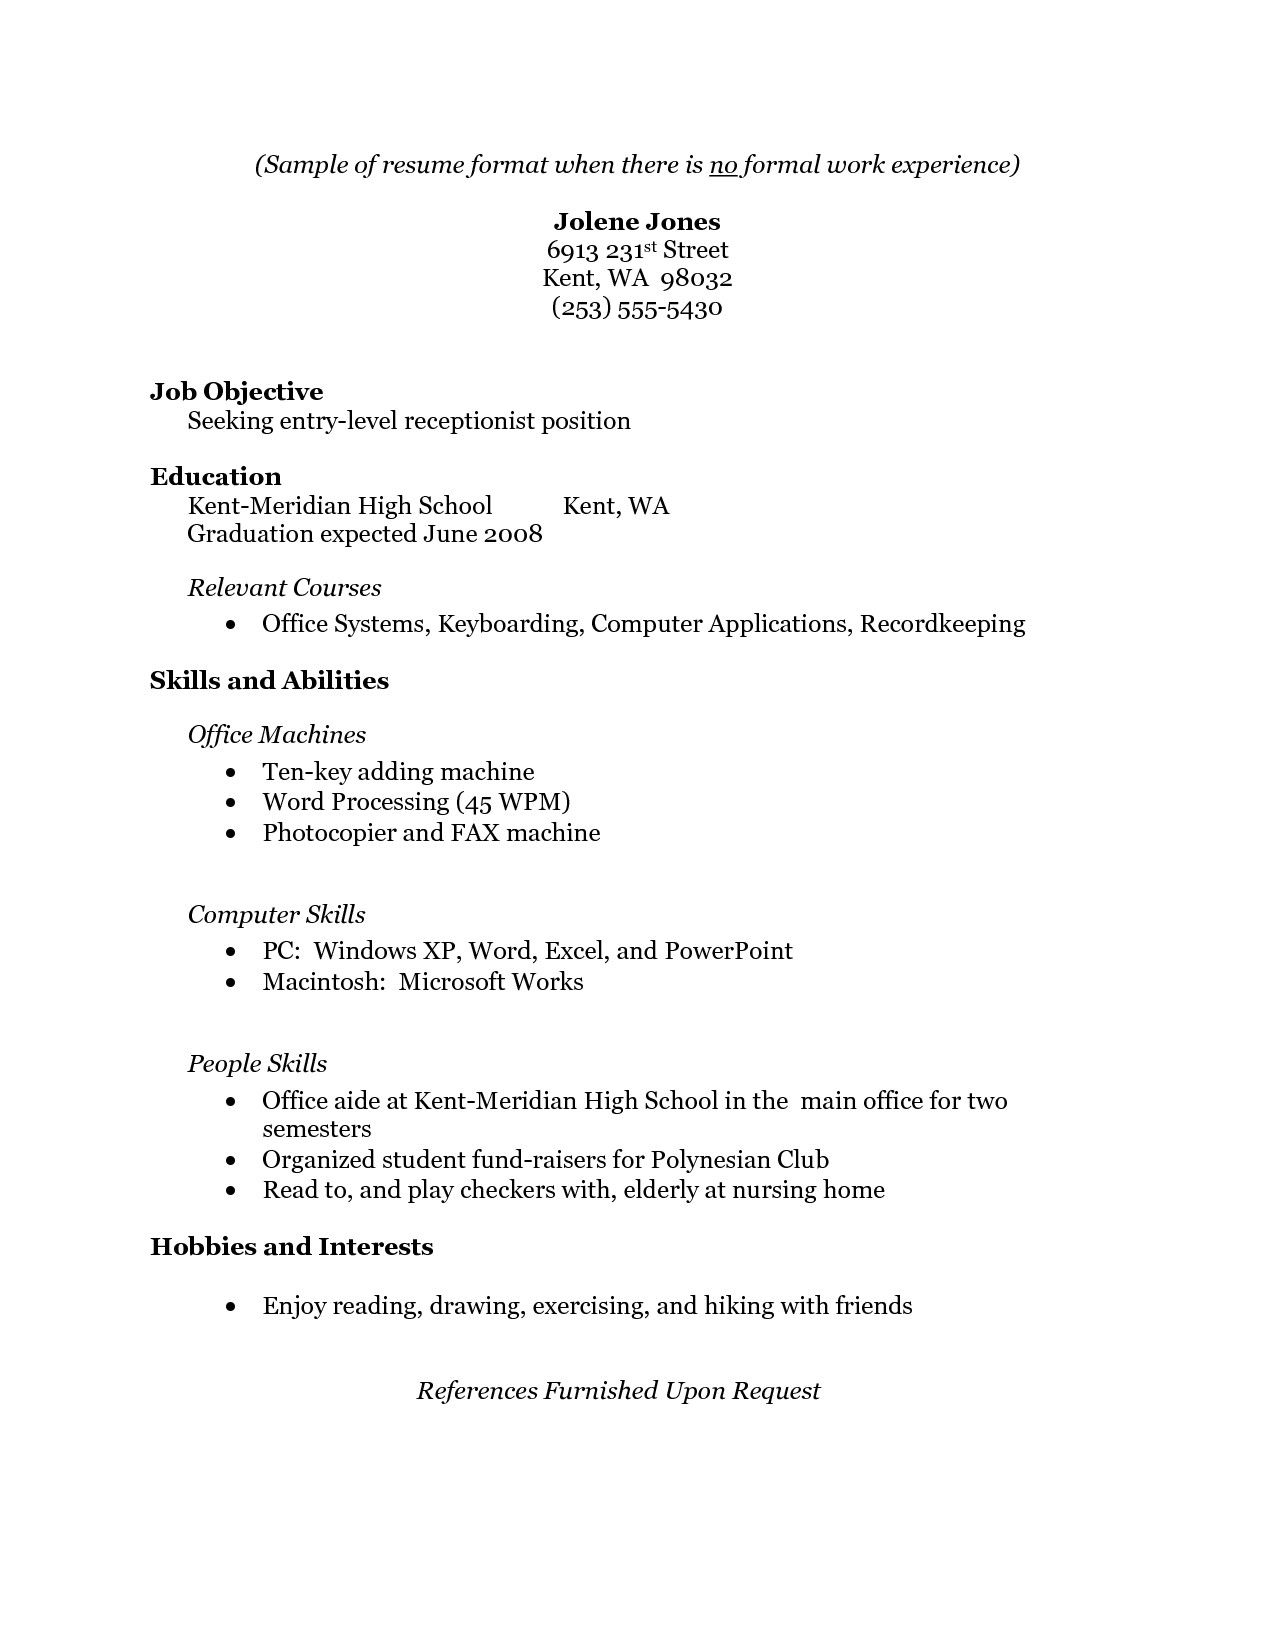 High Student Resume Templates No Work Experience | Free Resume Templates No Work Experience 3 Free Resume Templates